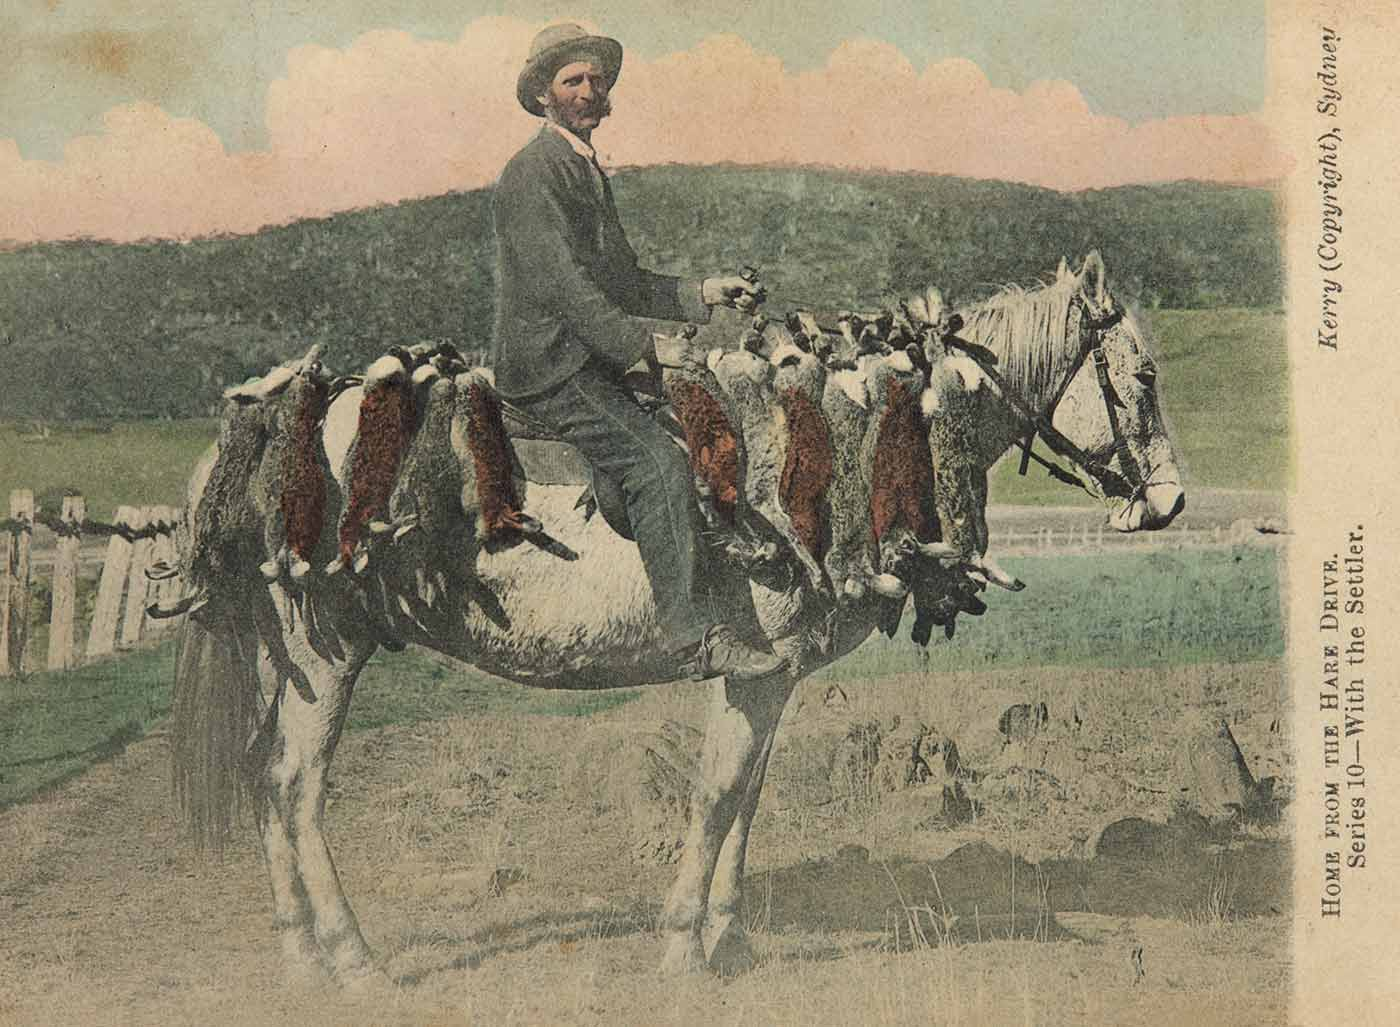 A postcard with hand-coloured photograph of a man on a horse with bundles of dead hares, titled